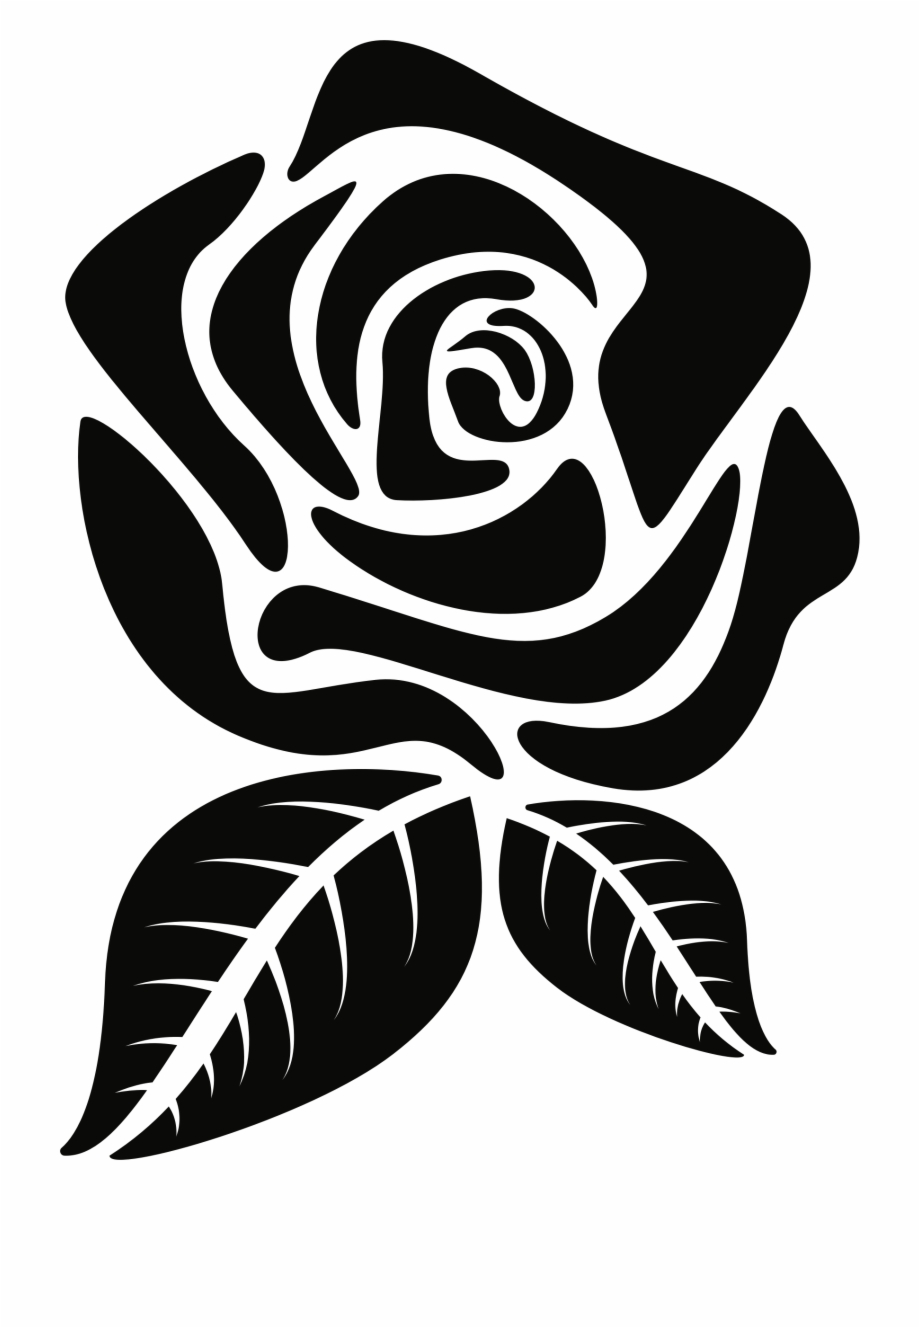 Rose Silhouette Png.